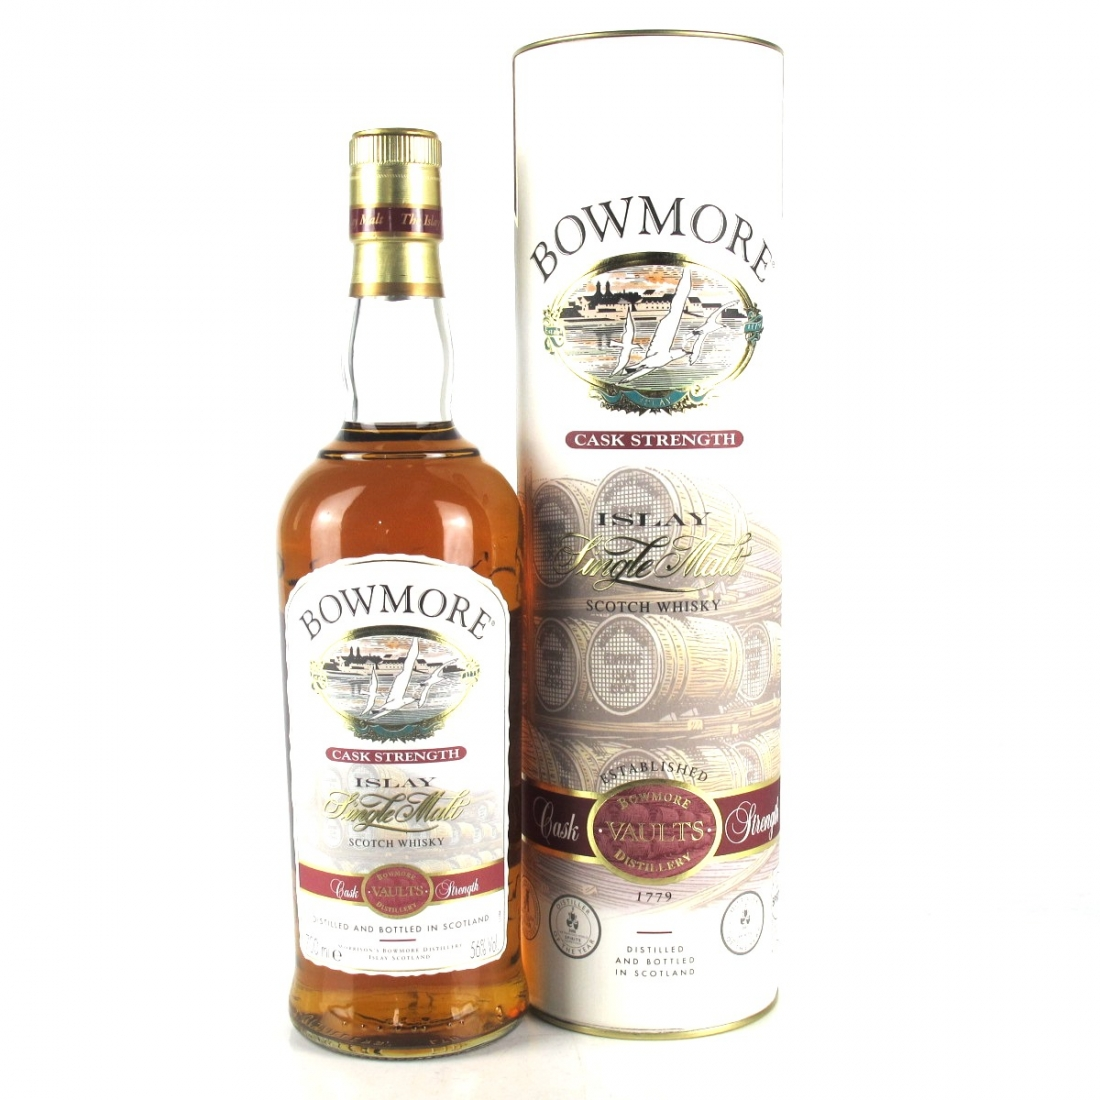 Bowmore Cask Strength